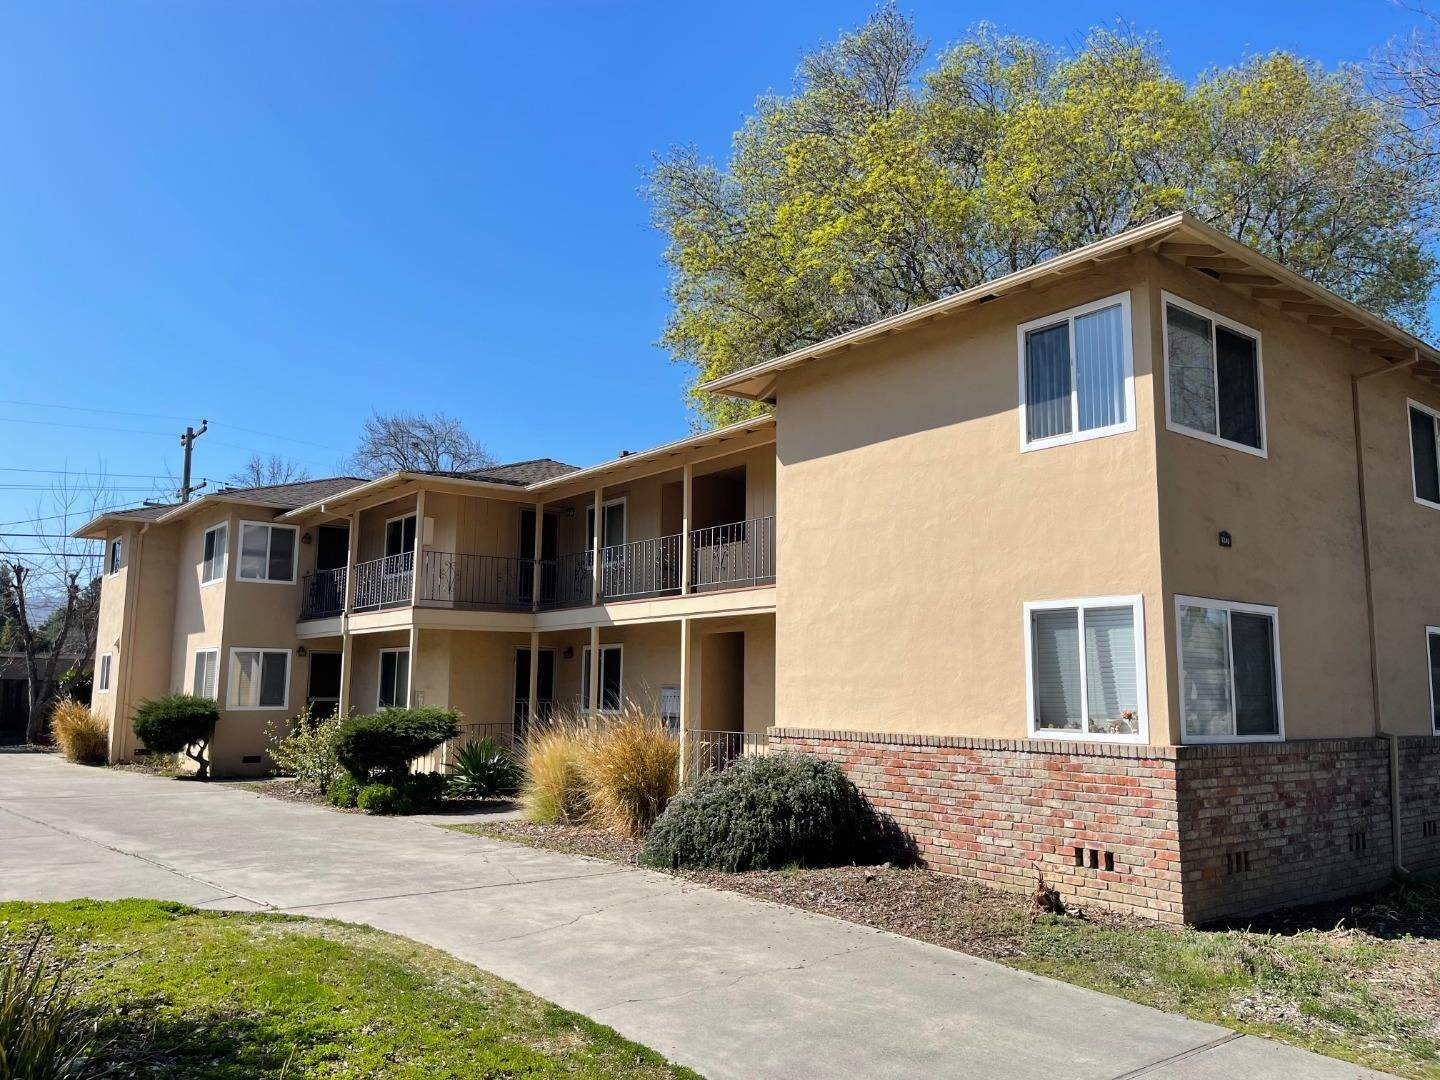 Multi-Family Homes for Sale at 1240 Brookfield Avenue Sunnyvale, California 94087 United States